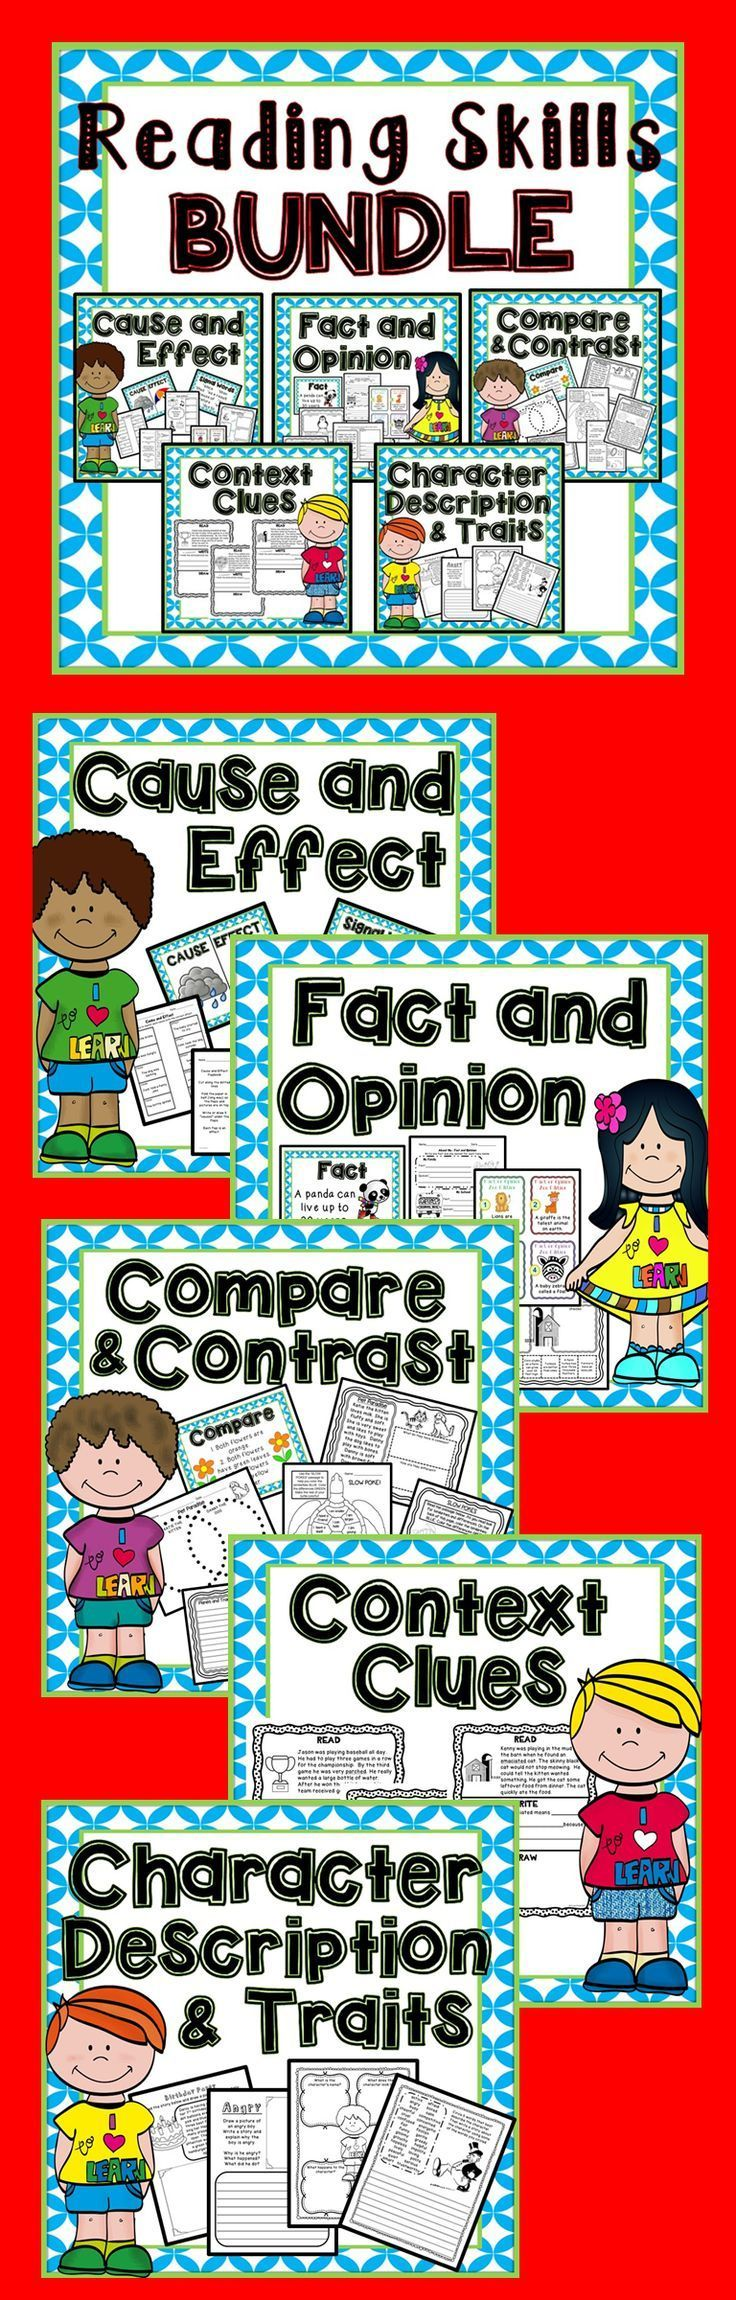 12 best Literacy images on Pinterest | Learning resources, Literacy ...